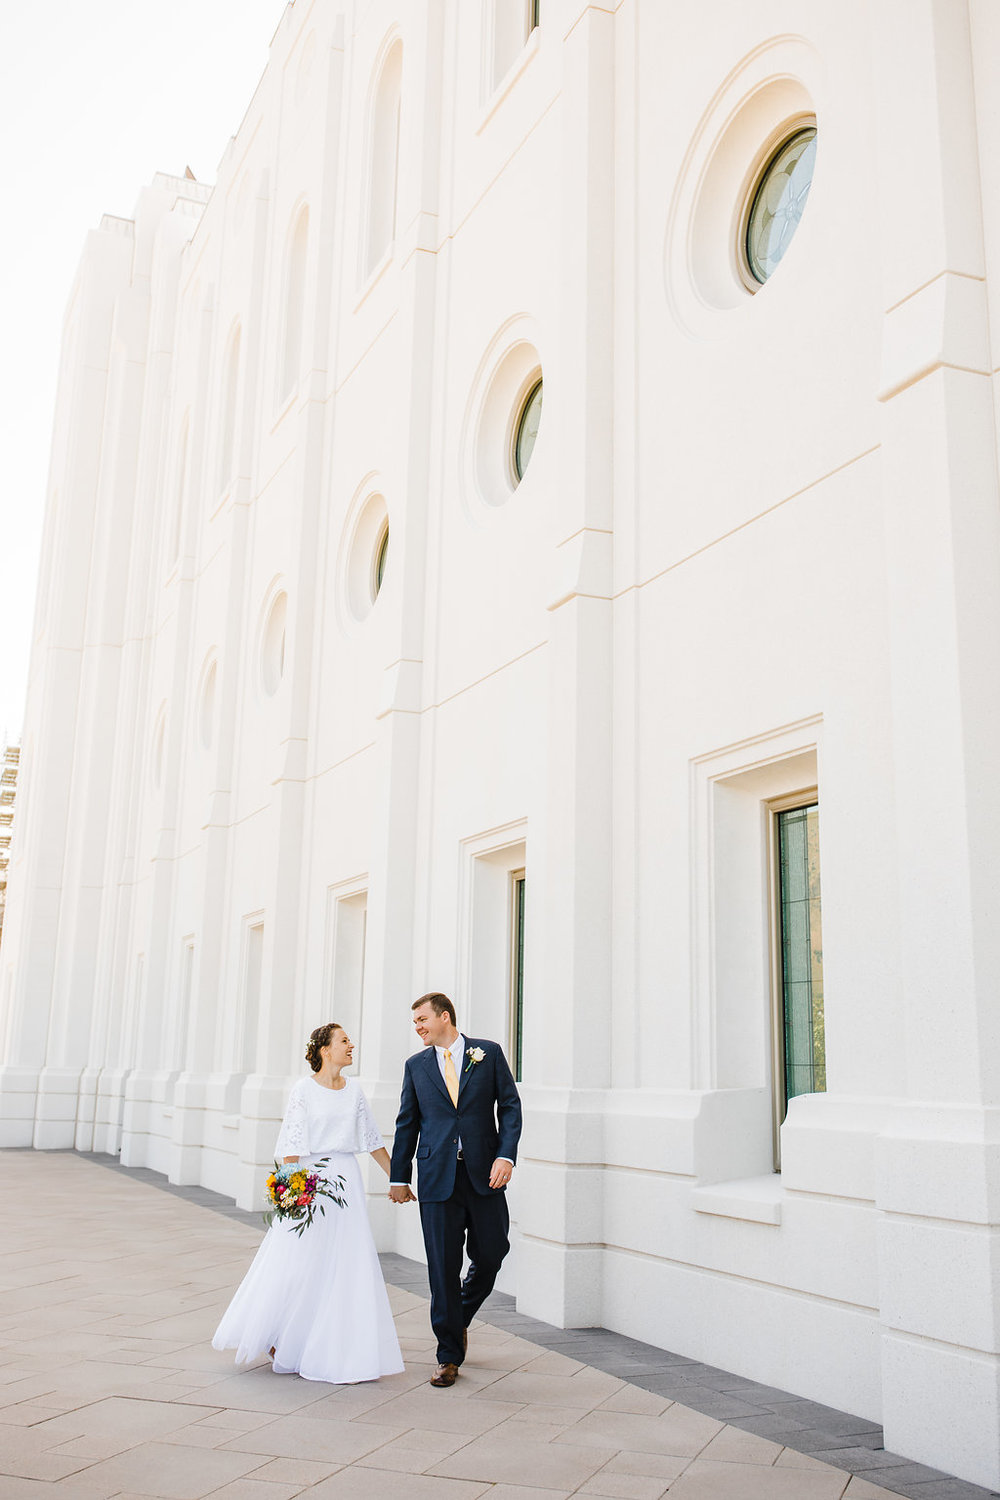 beautiful shot of the brigham city lds temple bride and groom on their wedding day calli richards professional wedding photographer